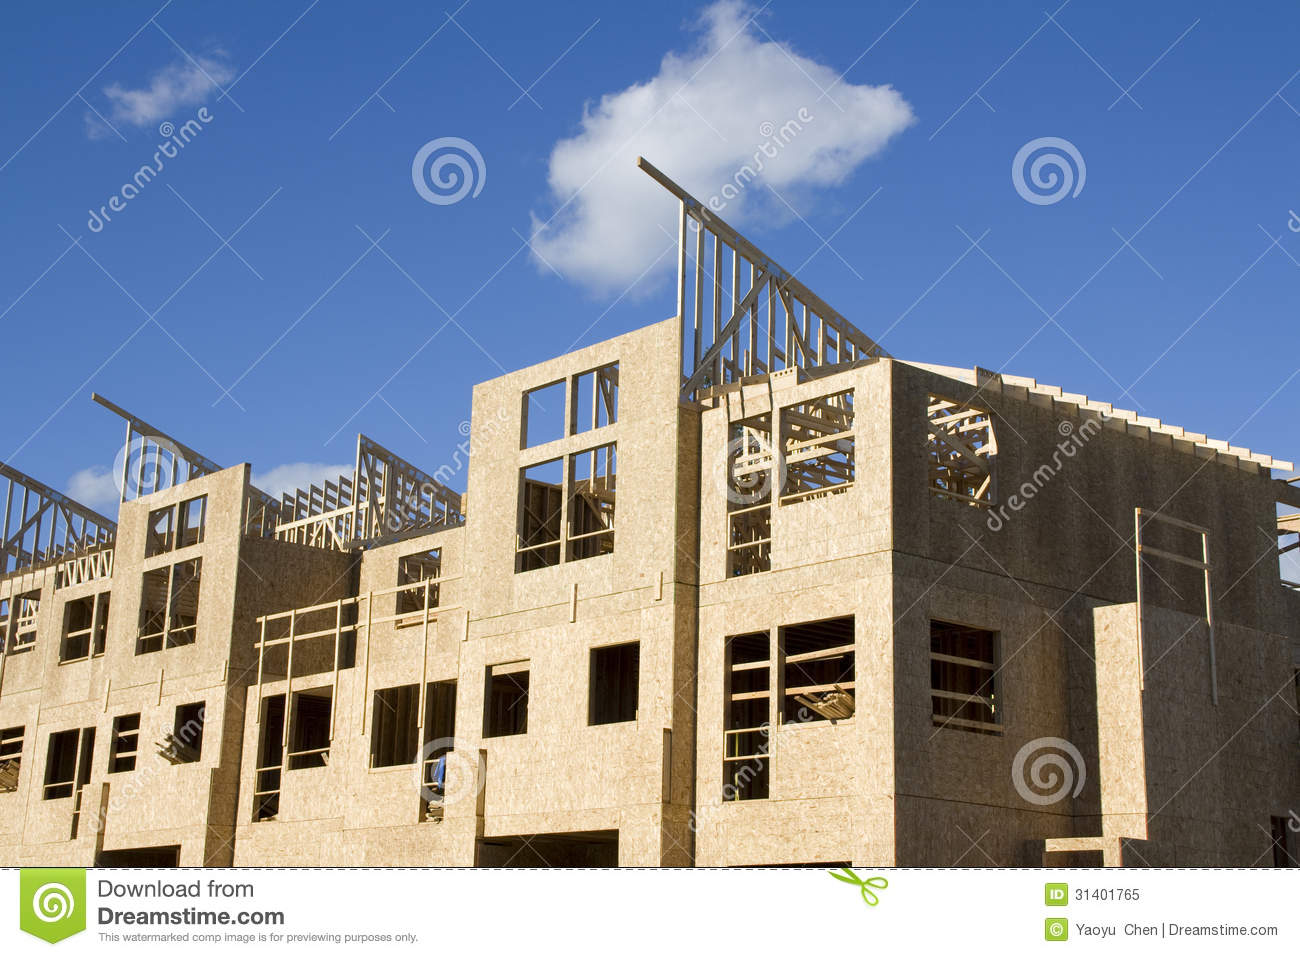 New home construction royalty free stock photo image for New homes seattle washington area